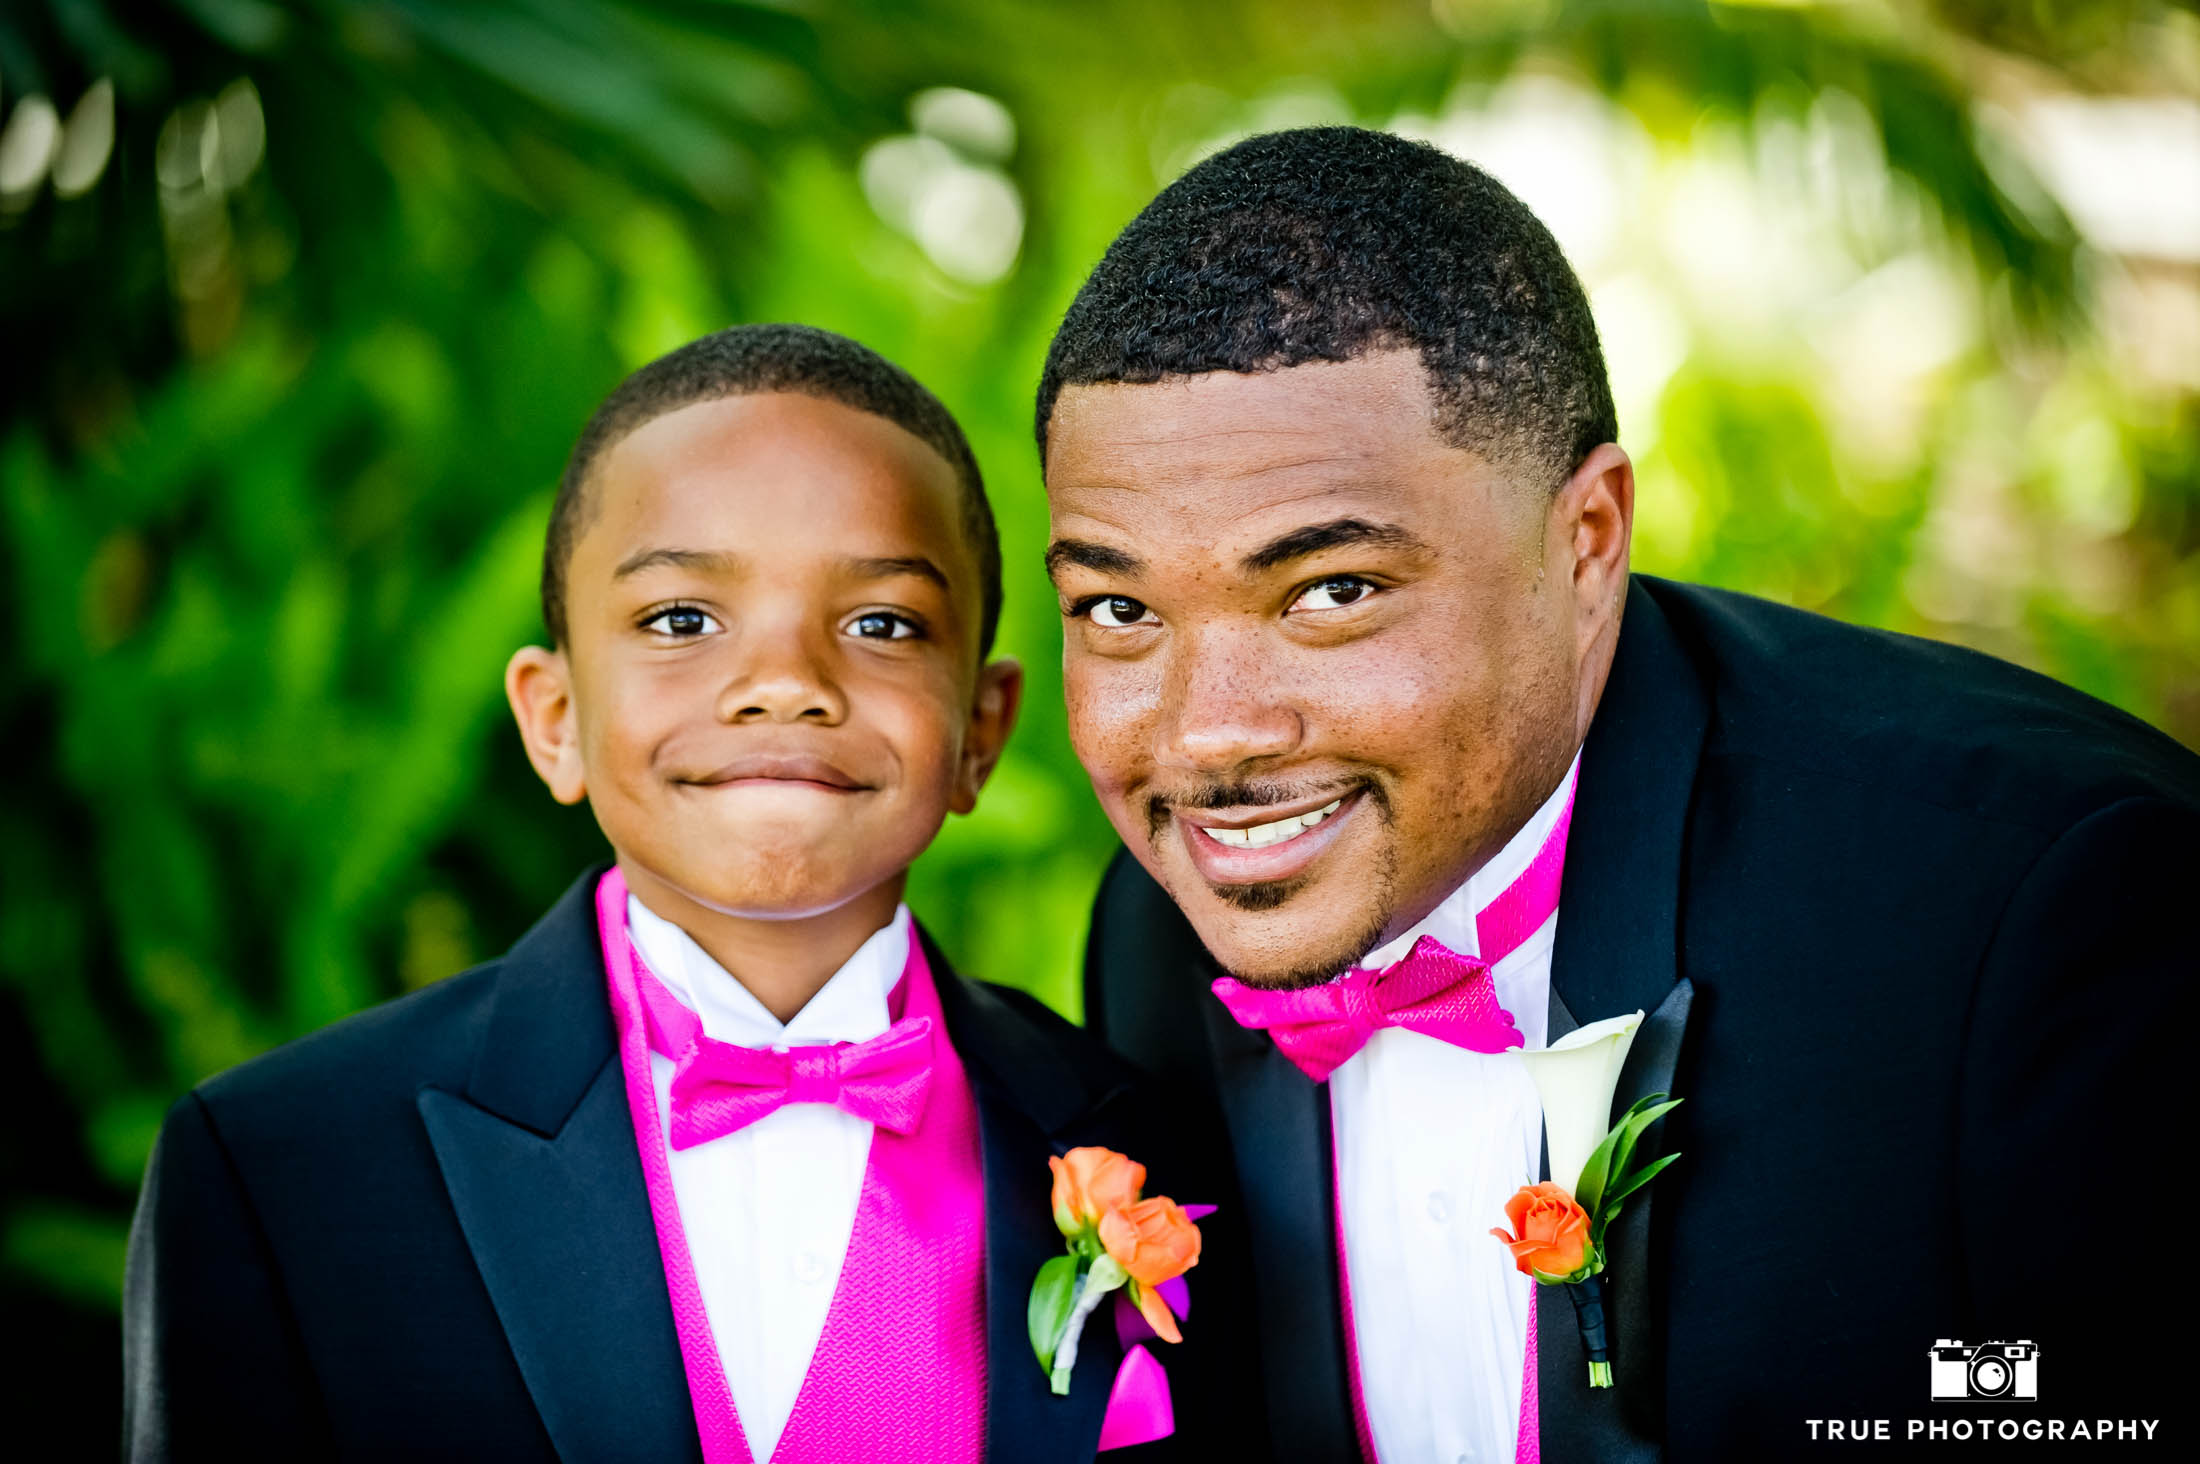 Groom and His Son in matching pink bow ties